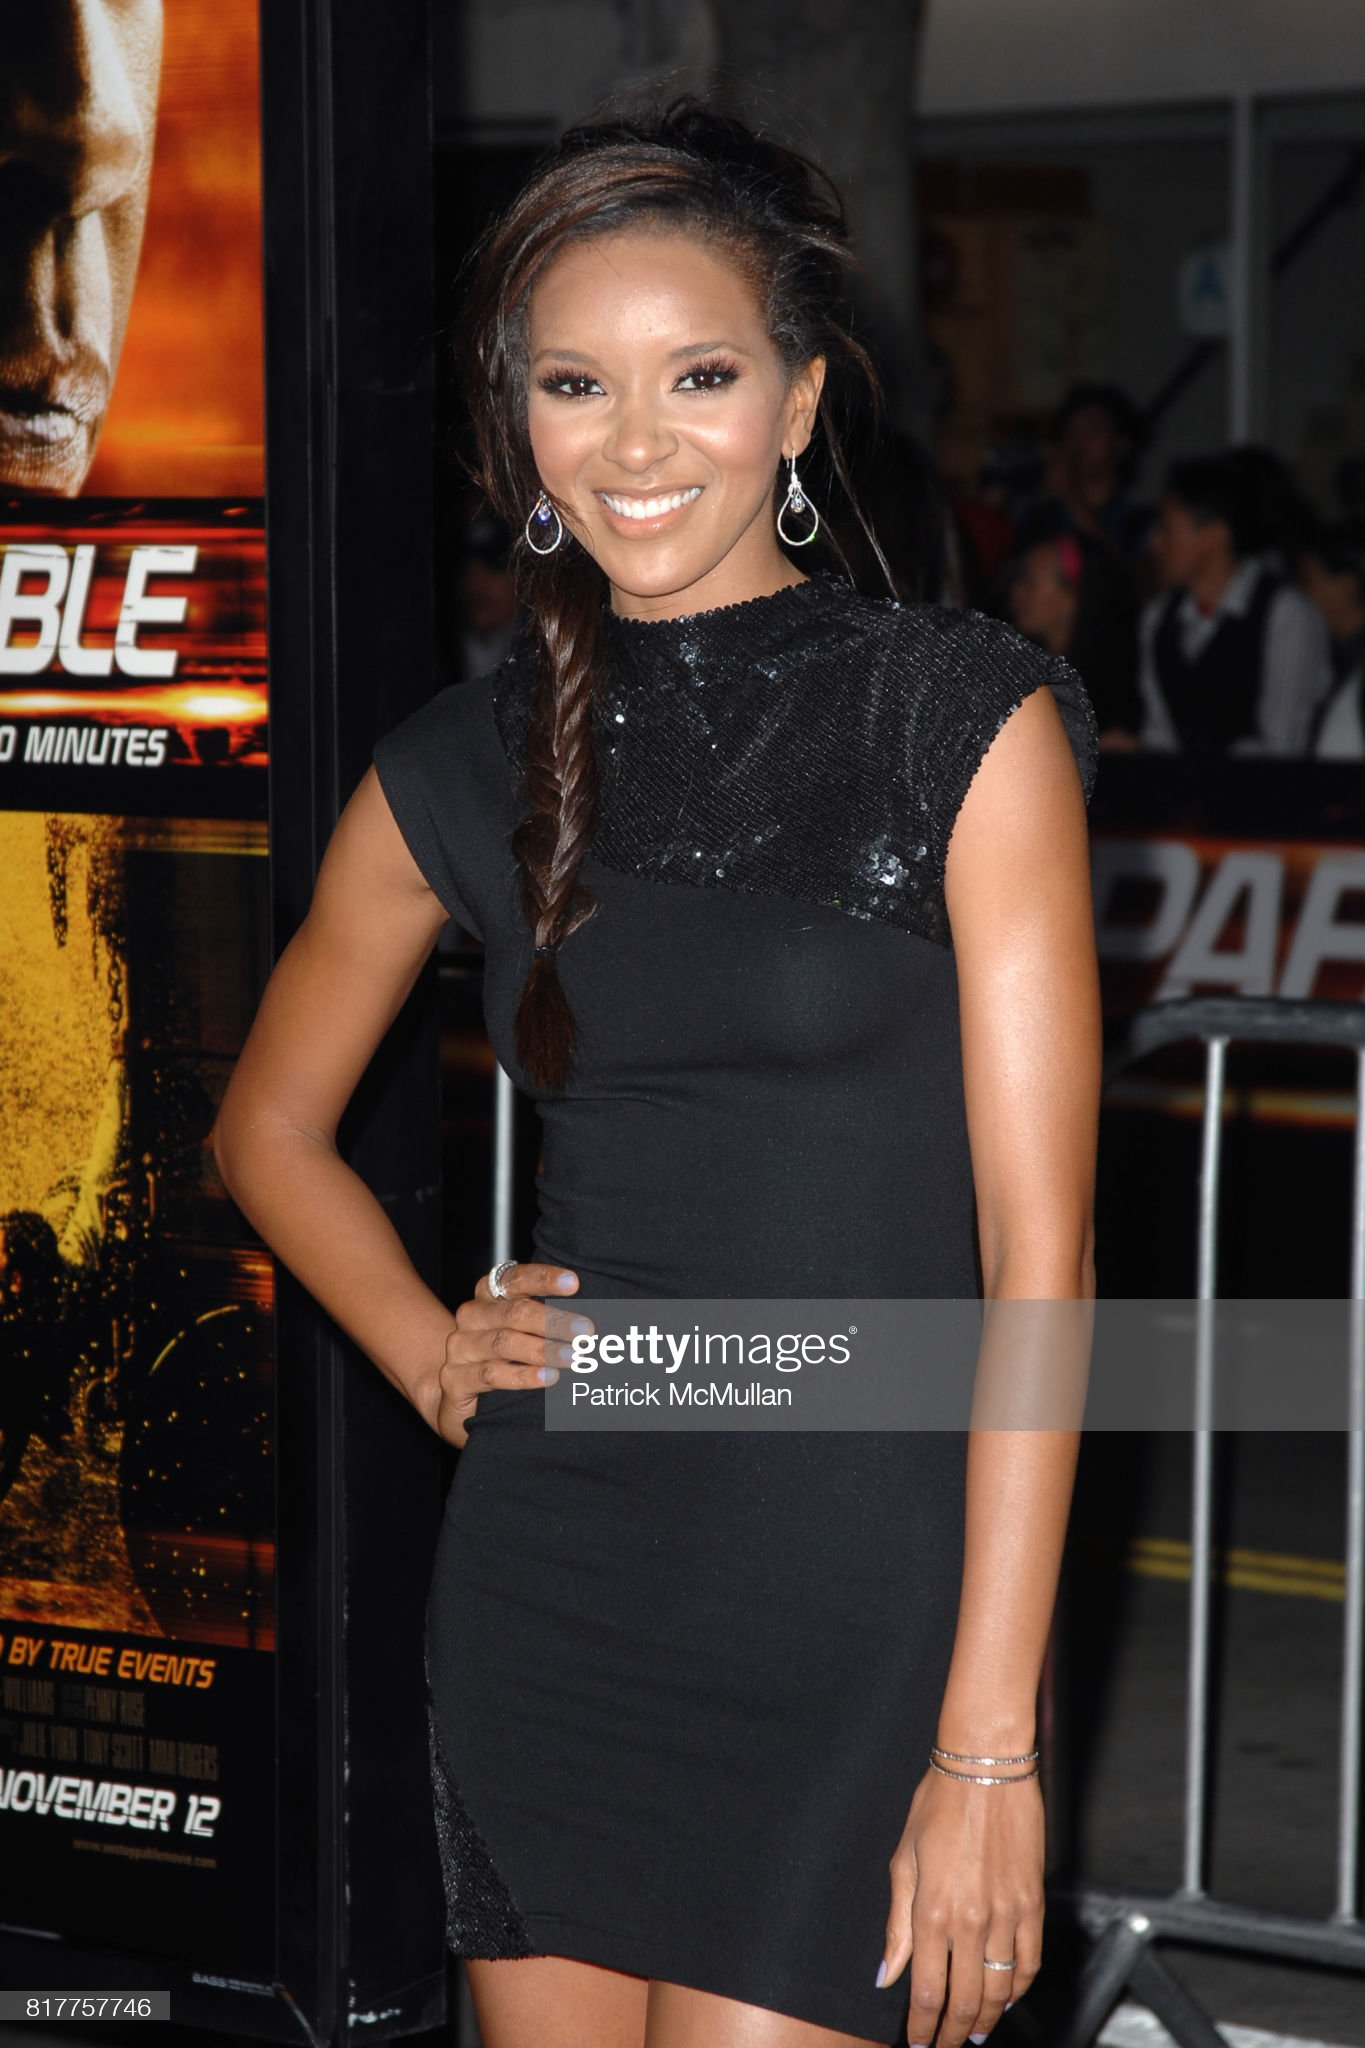 Top 80 Famosas Foroalturas - Página 2 Elizabeth-mathis-attends-unstoppable-world-premiere-at-regency-on-picture-id817757746?s=2048x2048